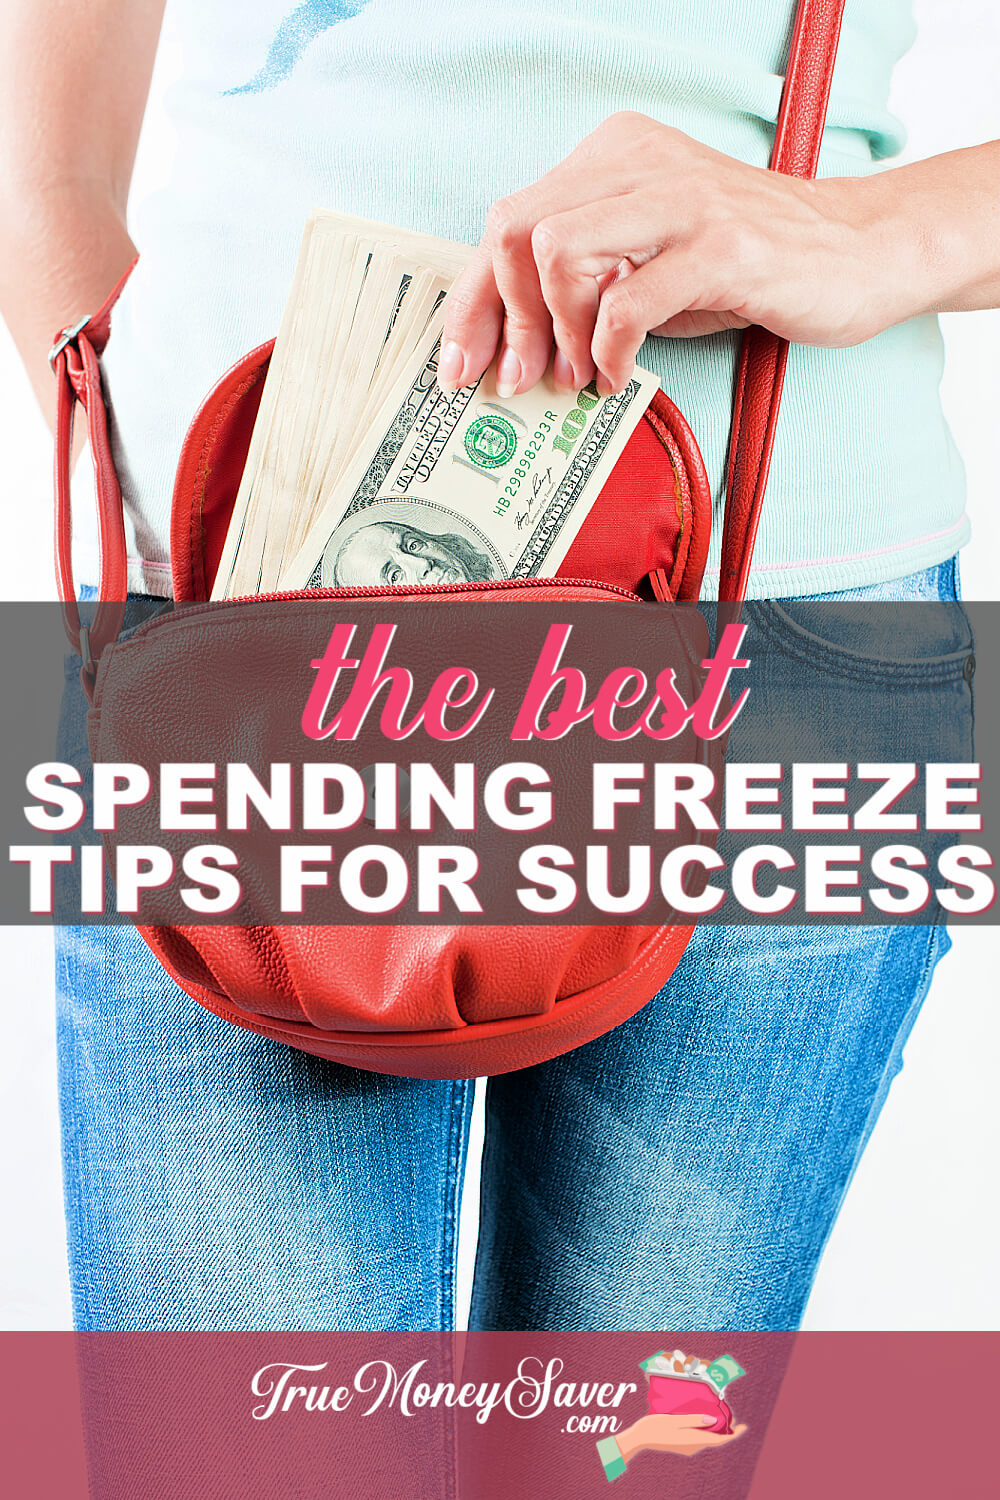 The Best Spending Freeze Tips To Be Successful This Year